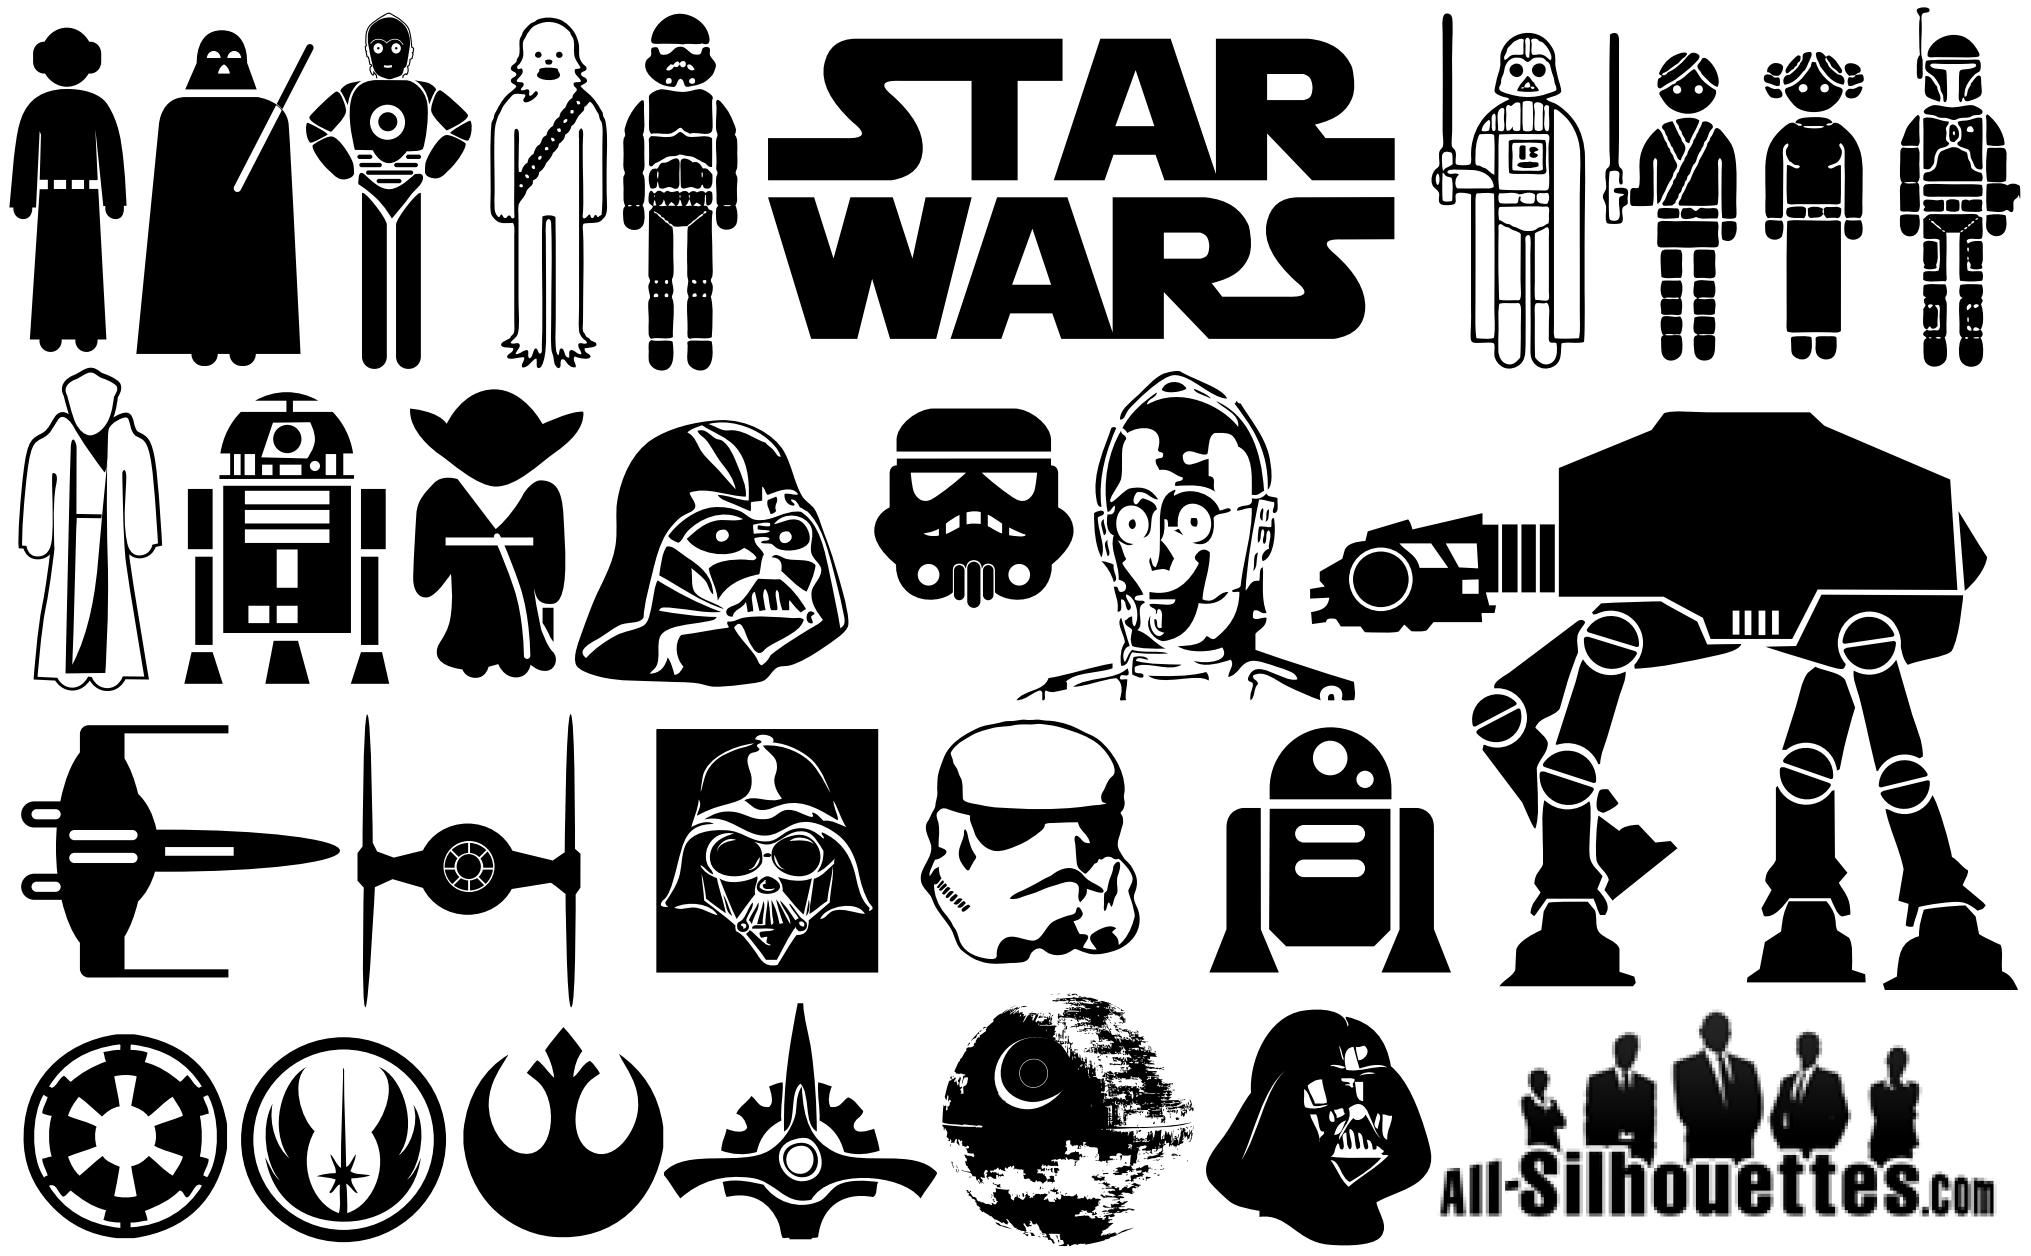 Plotterdatei Star Wars Star Wars Silhouette Clip Art Cliparts